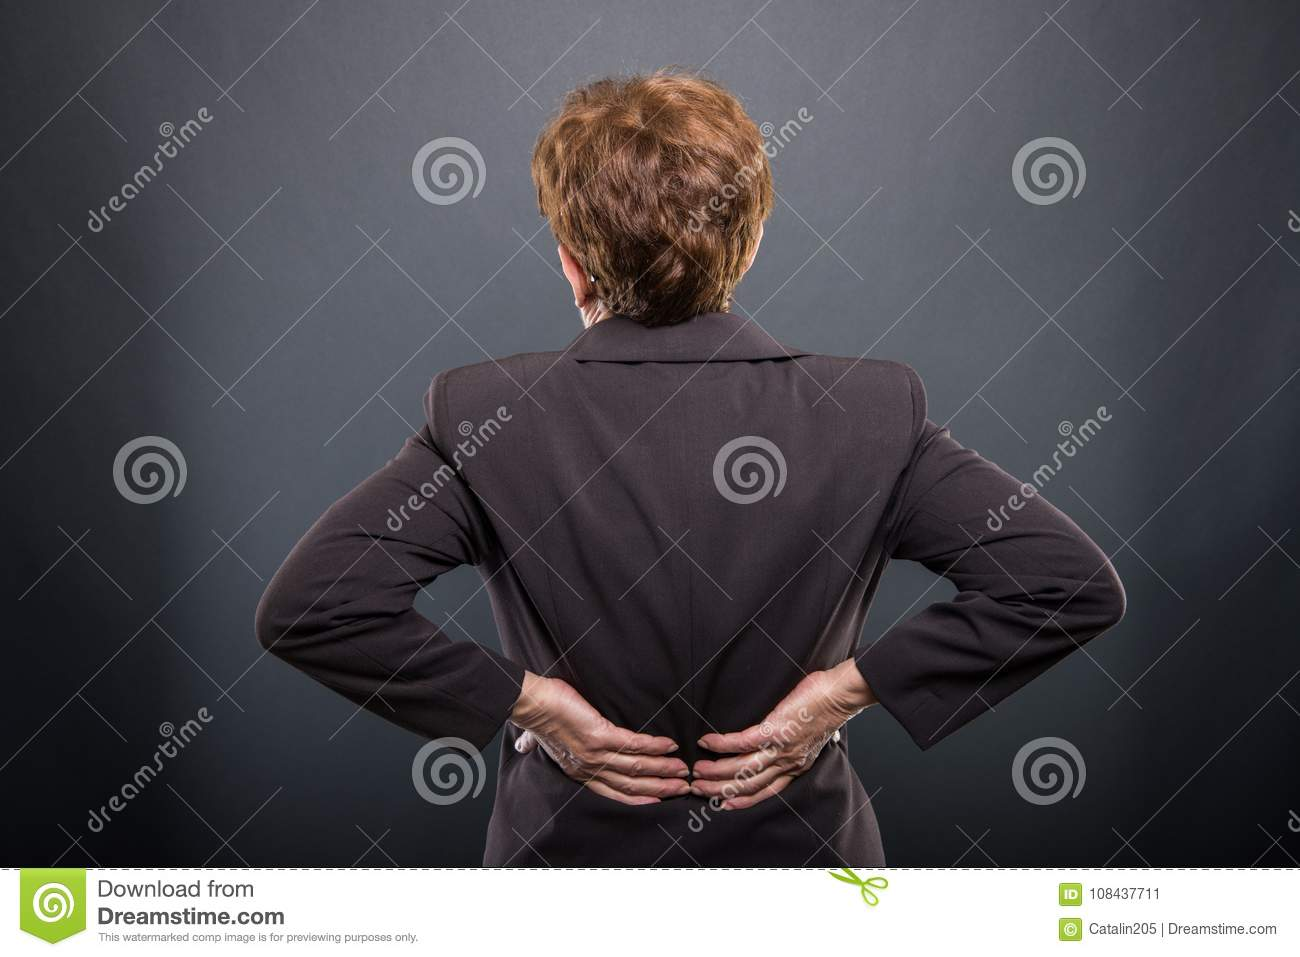 Business senior lady holding her back like hurting